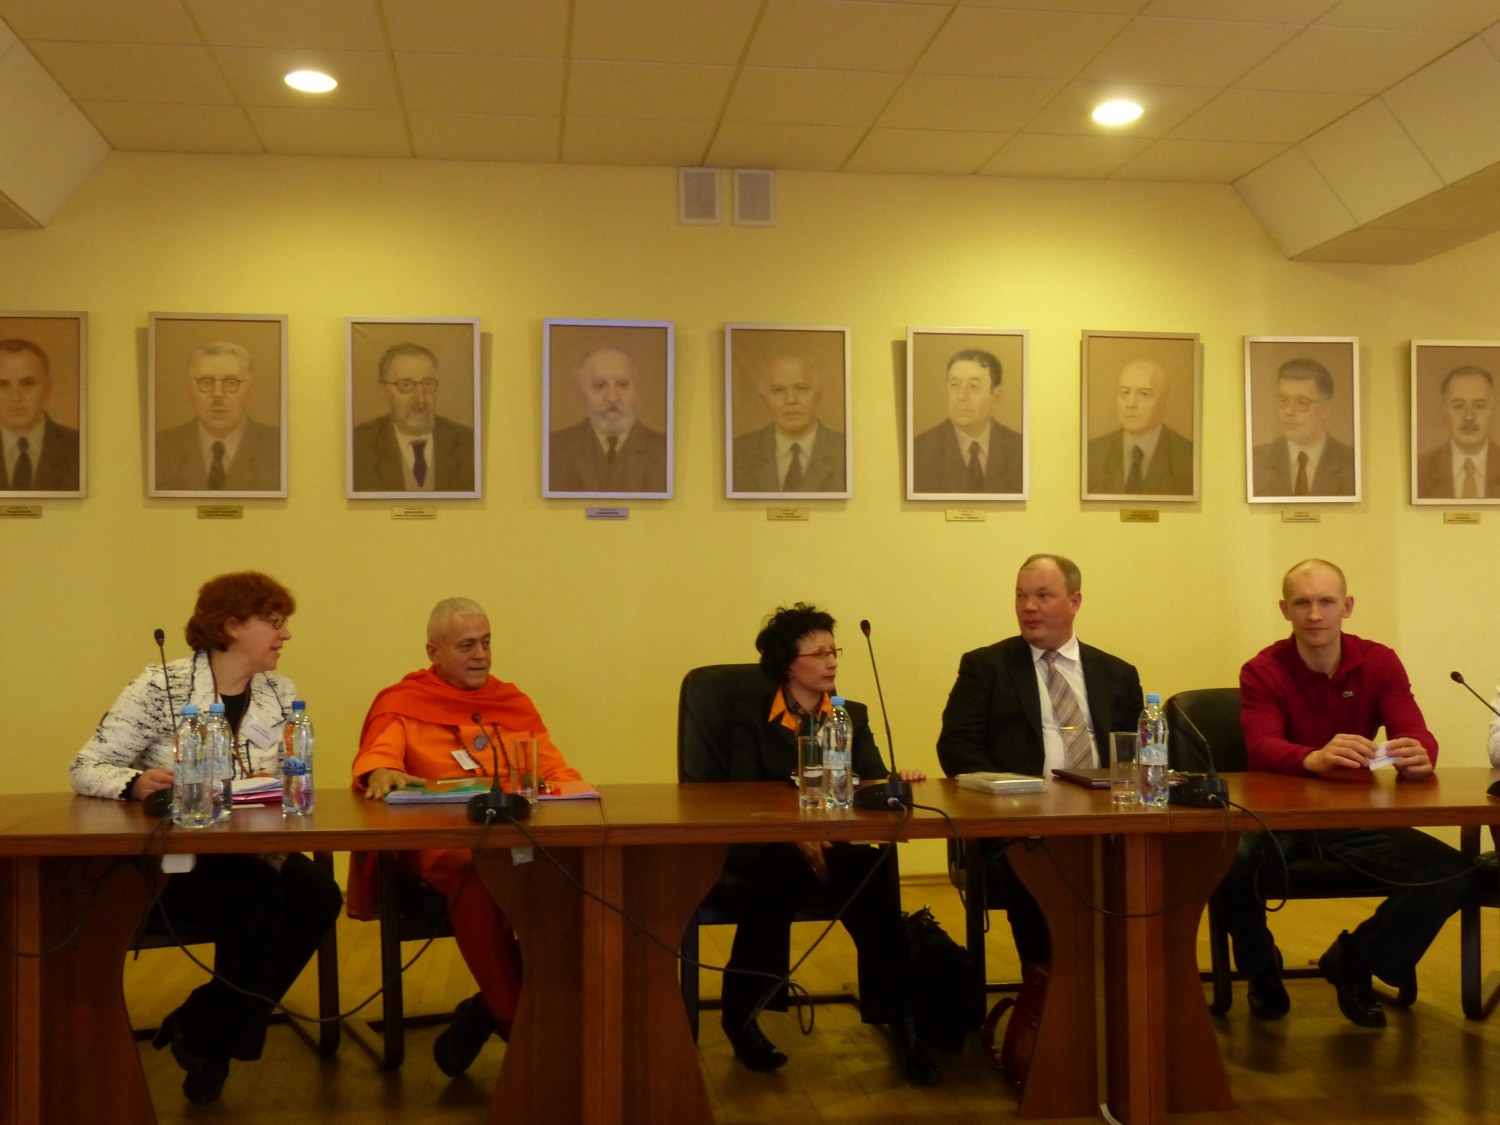 Meeting of H.H. Jagat Guru Amrta Sūryānanda Mahā Rāja with the Board of Direction of the Classical Yoga Federation of Russia - Moscow, Russia - 2013, April